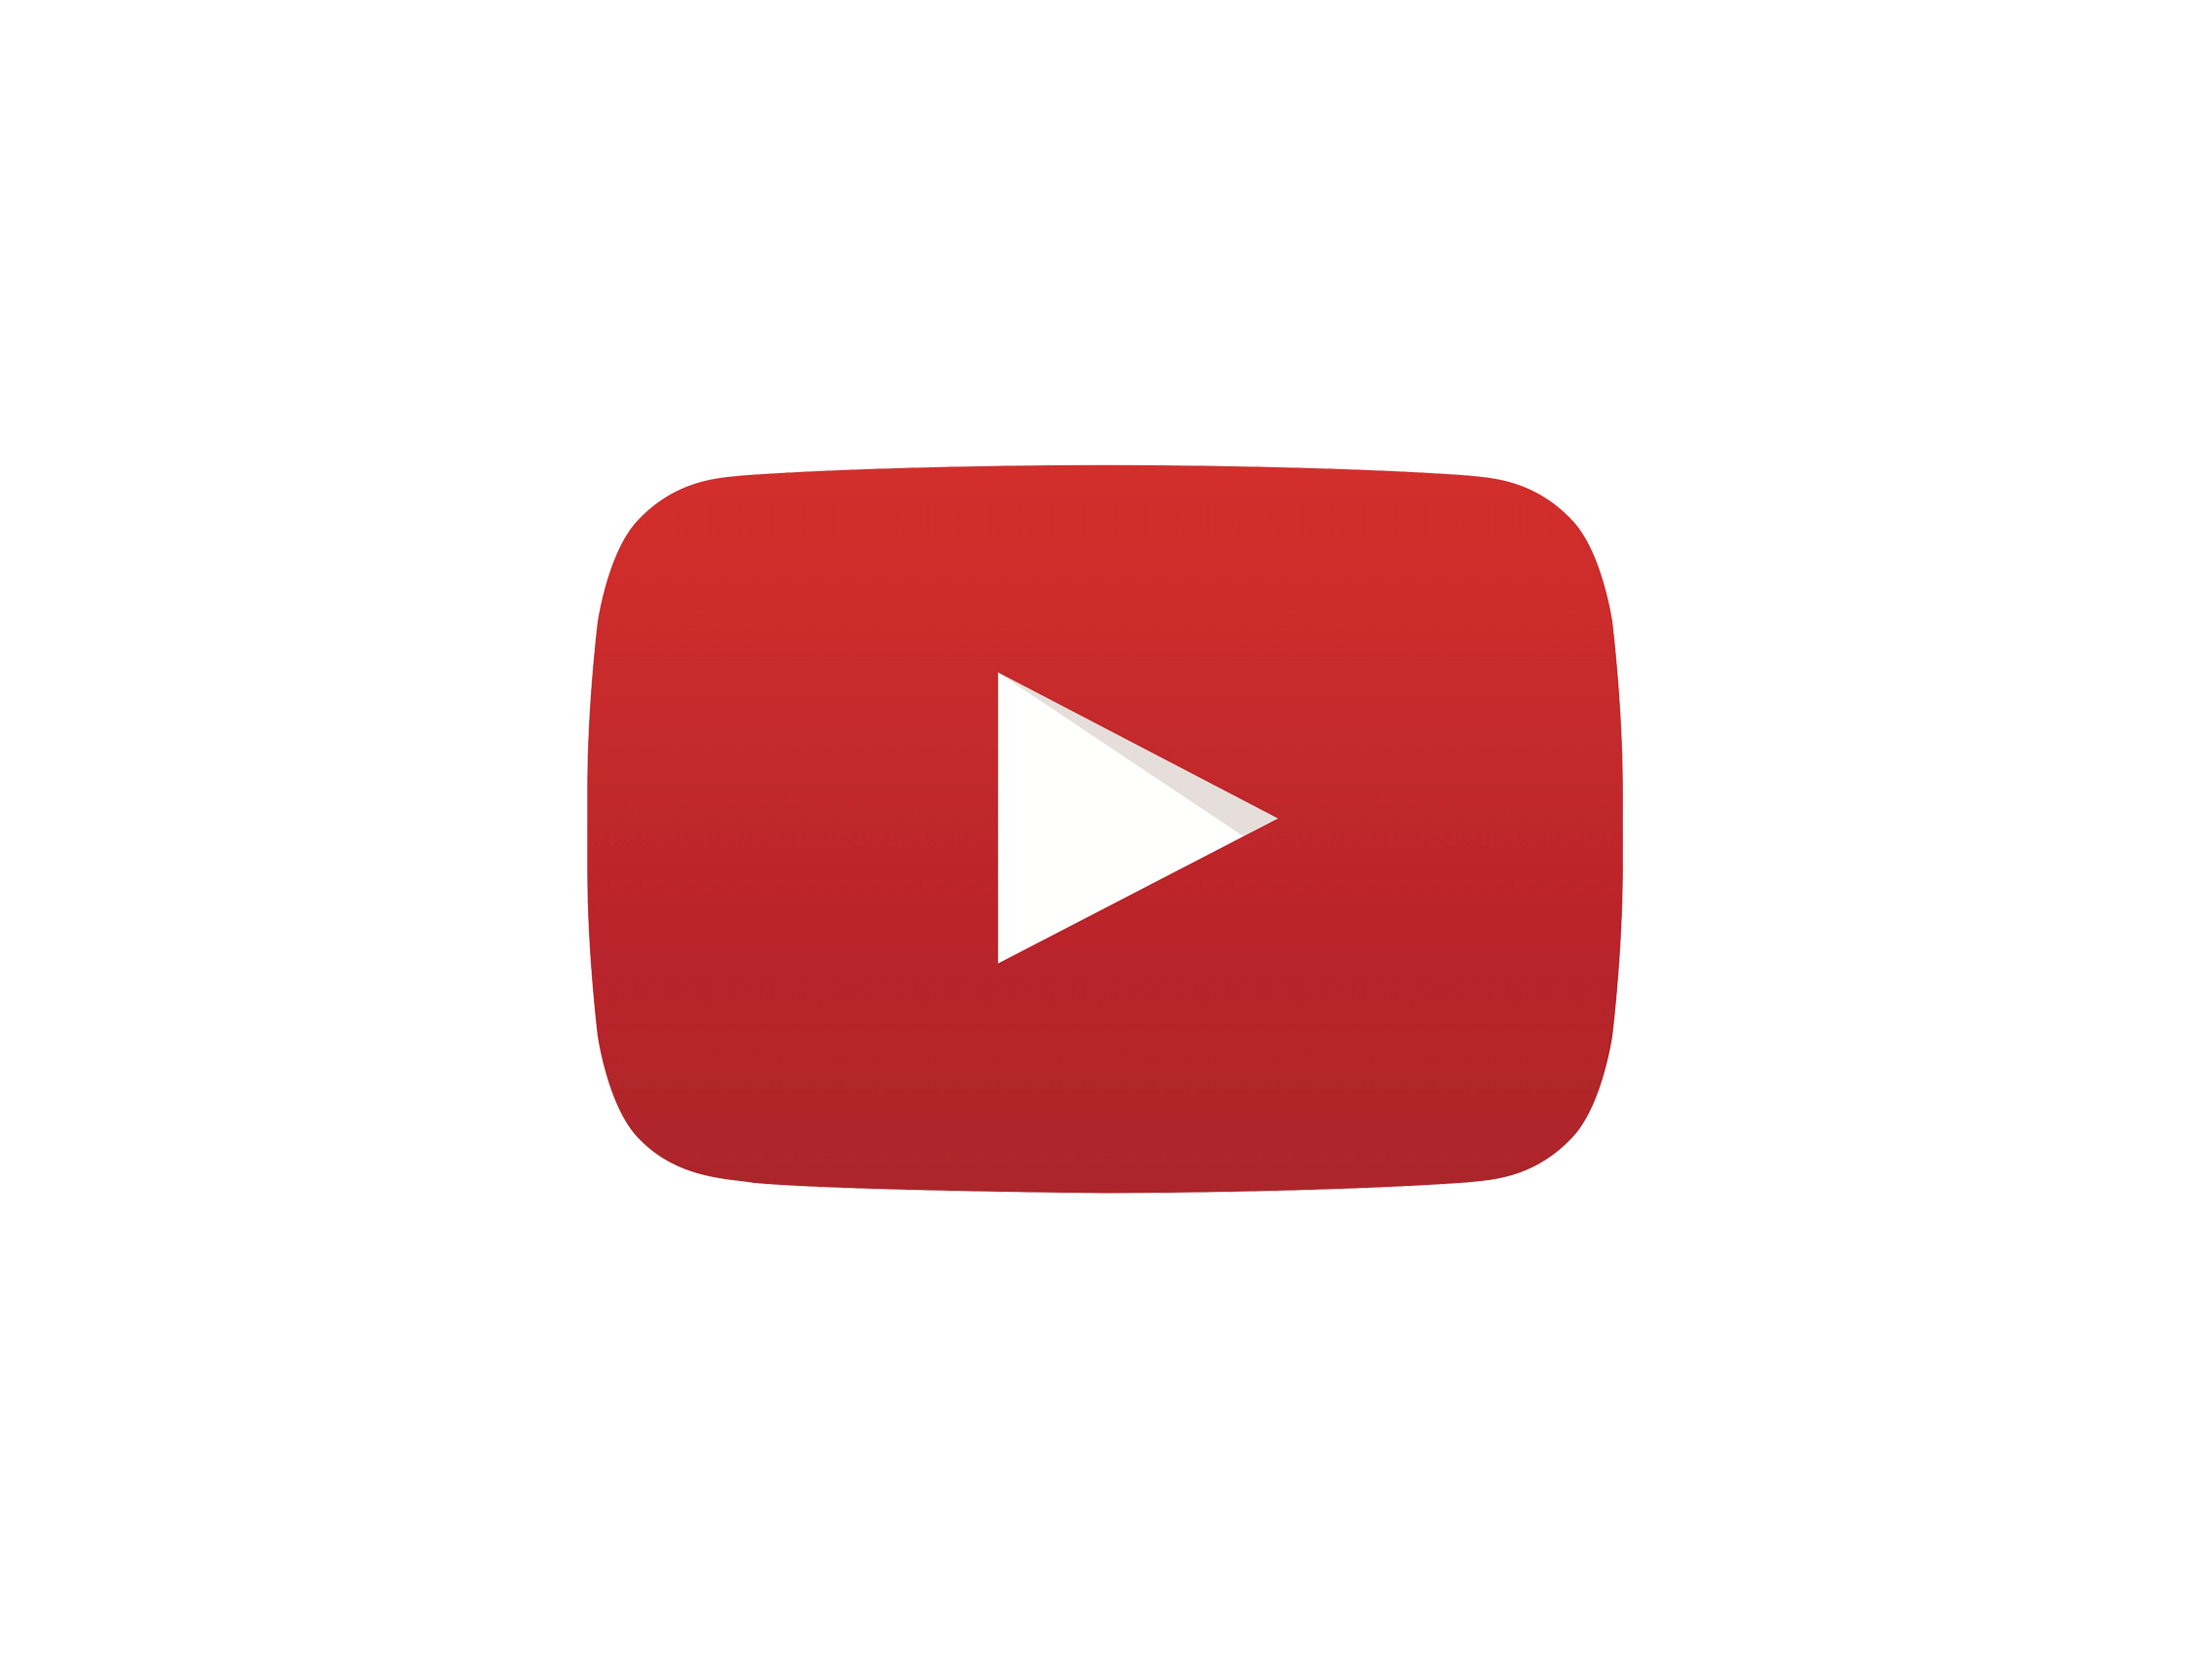 YouTube-logo-play-icon